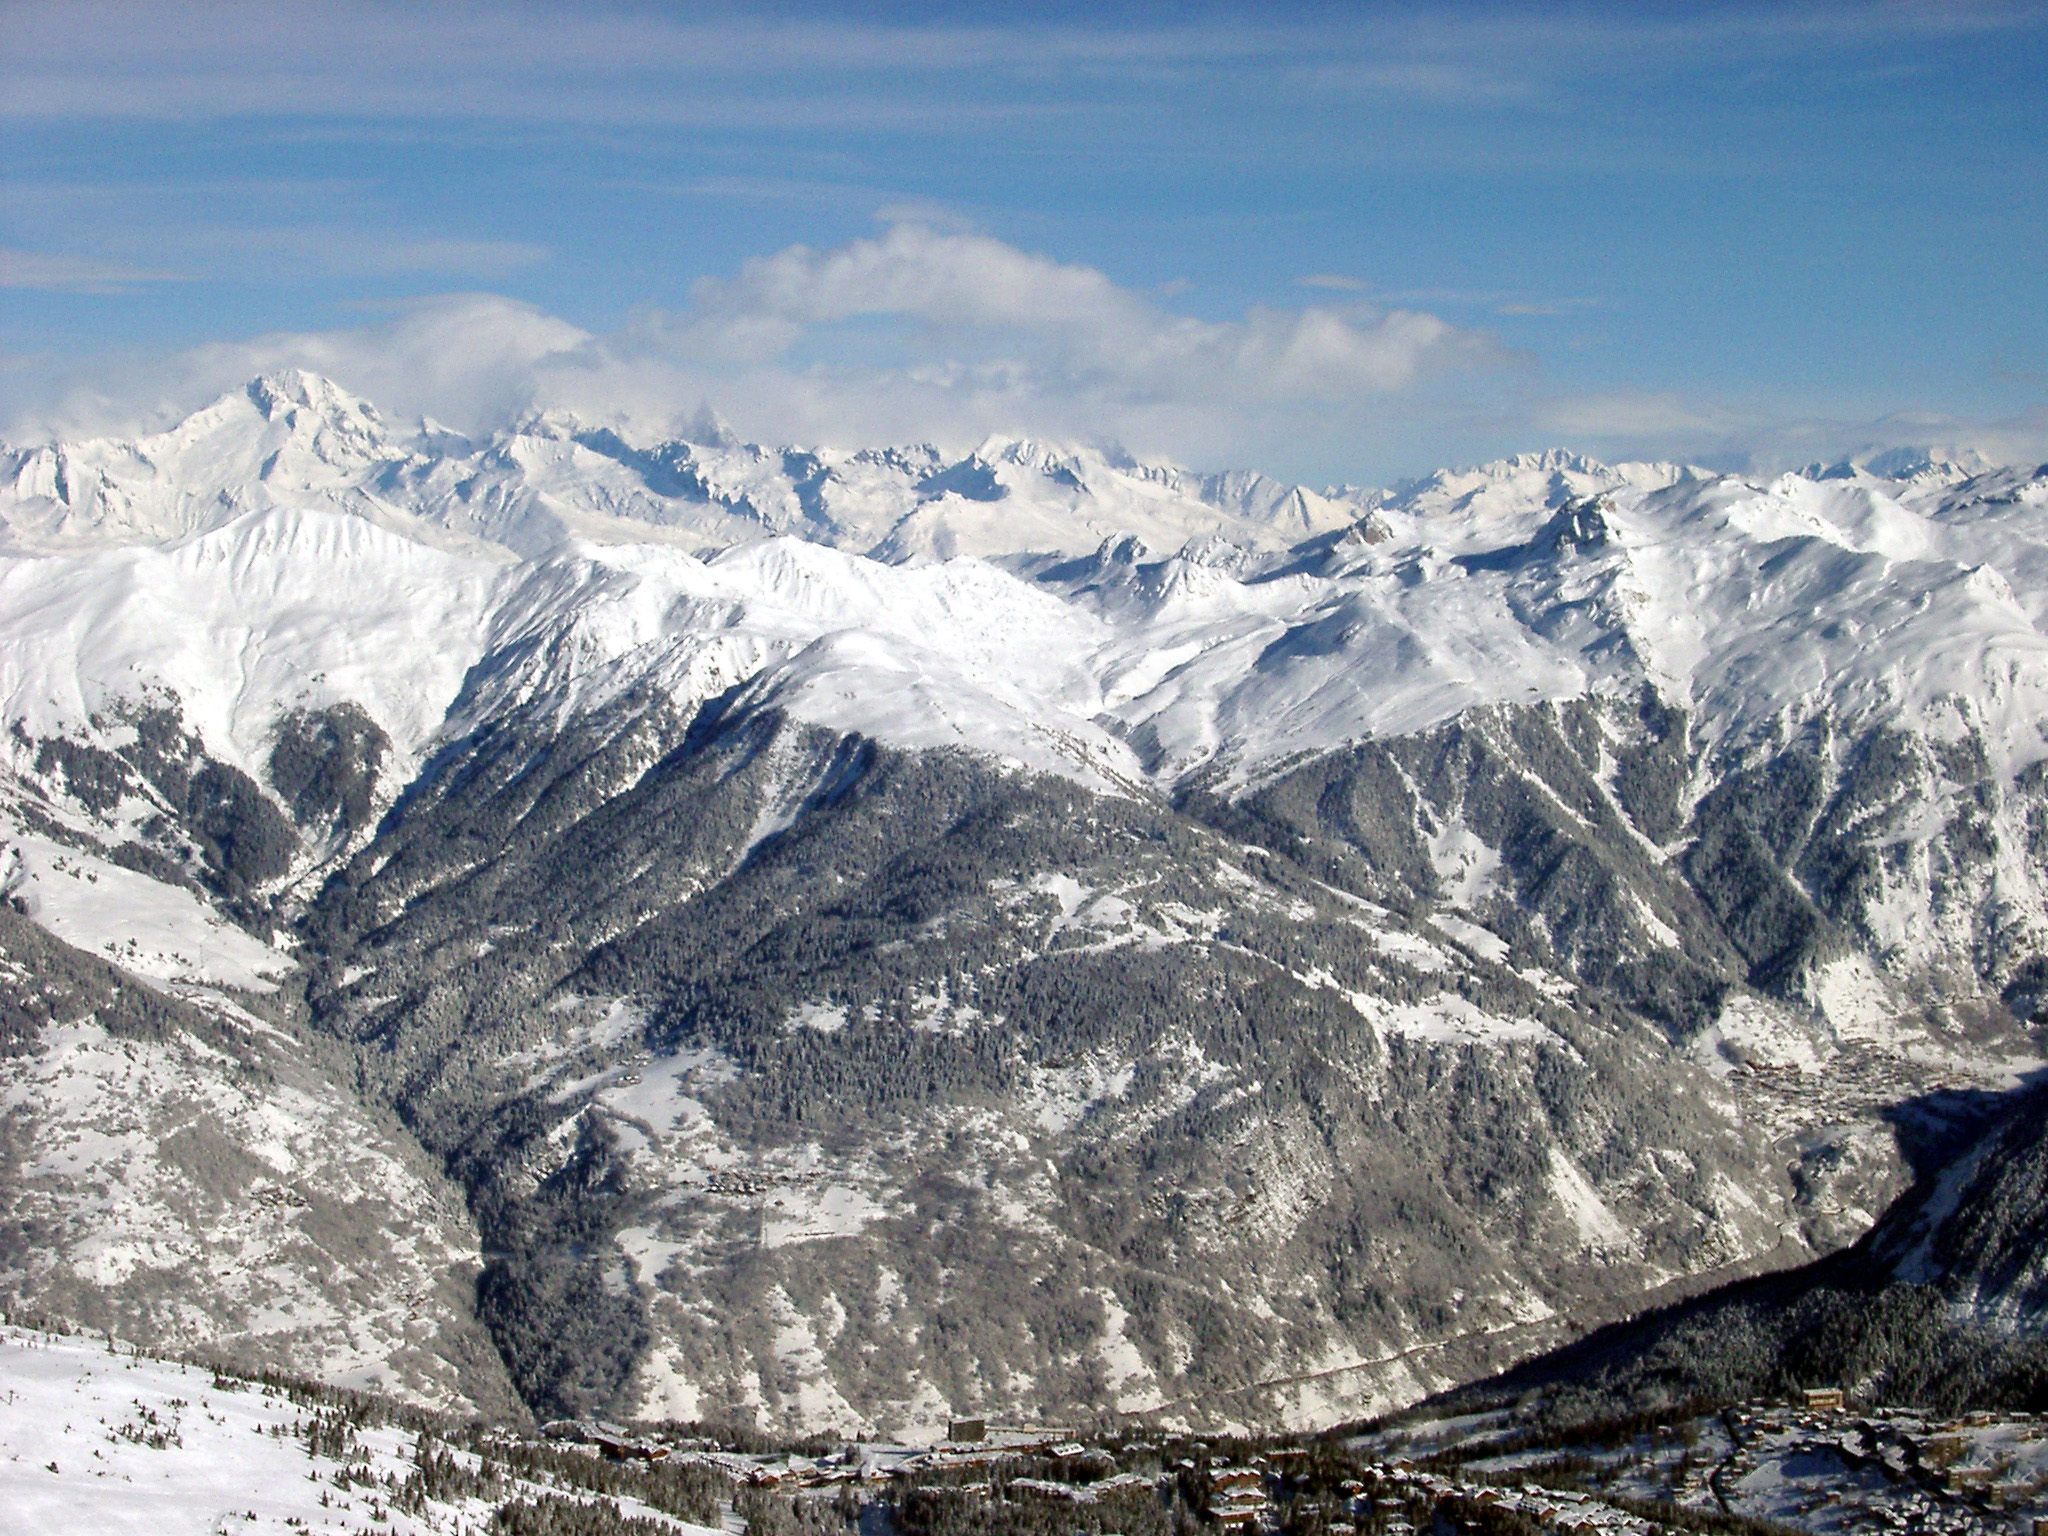 Mountainous winter landscape in France with spectacular rugged mountain ranges covered in snow stretching into the distance under a sunny blue sky